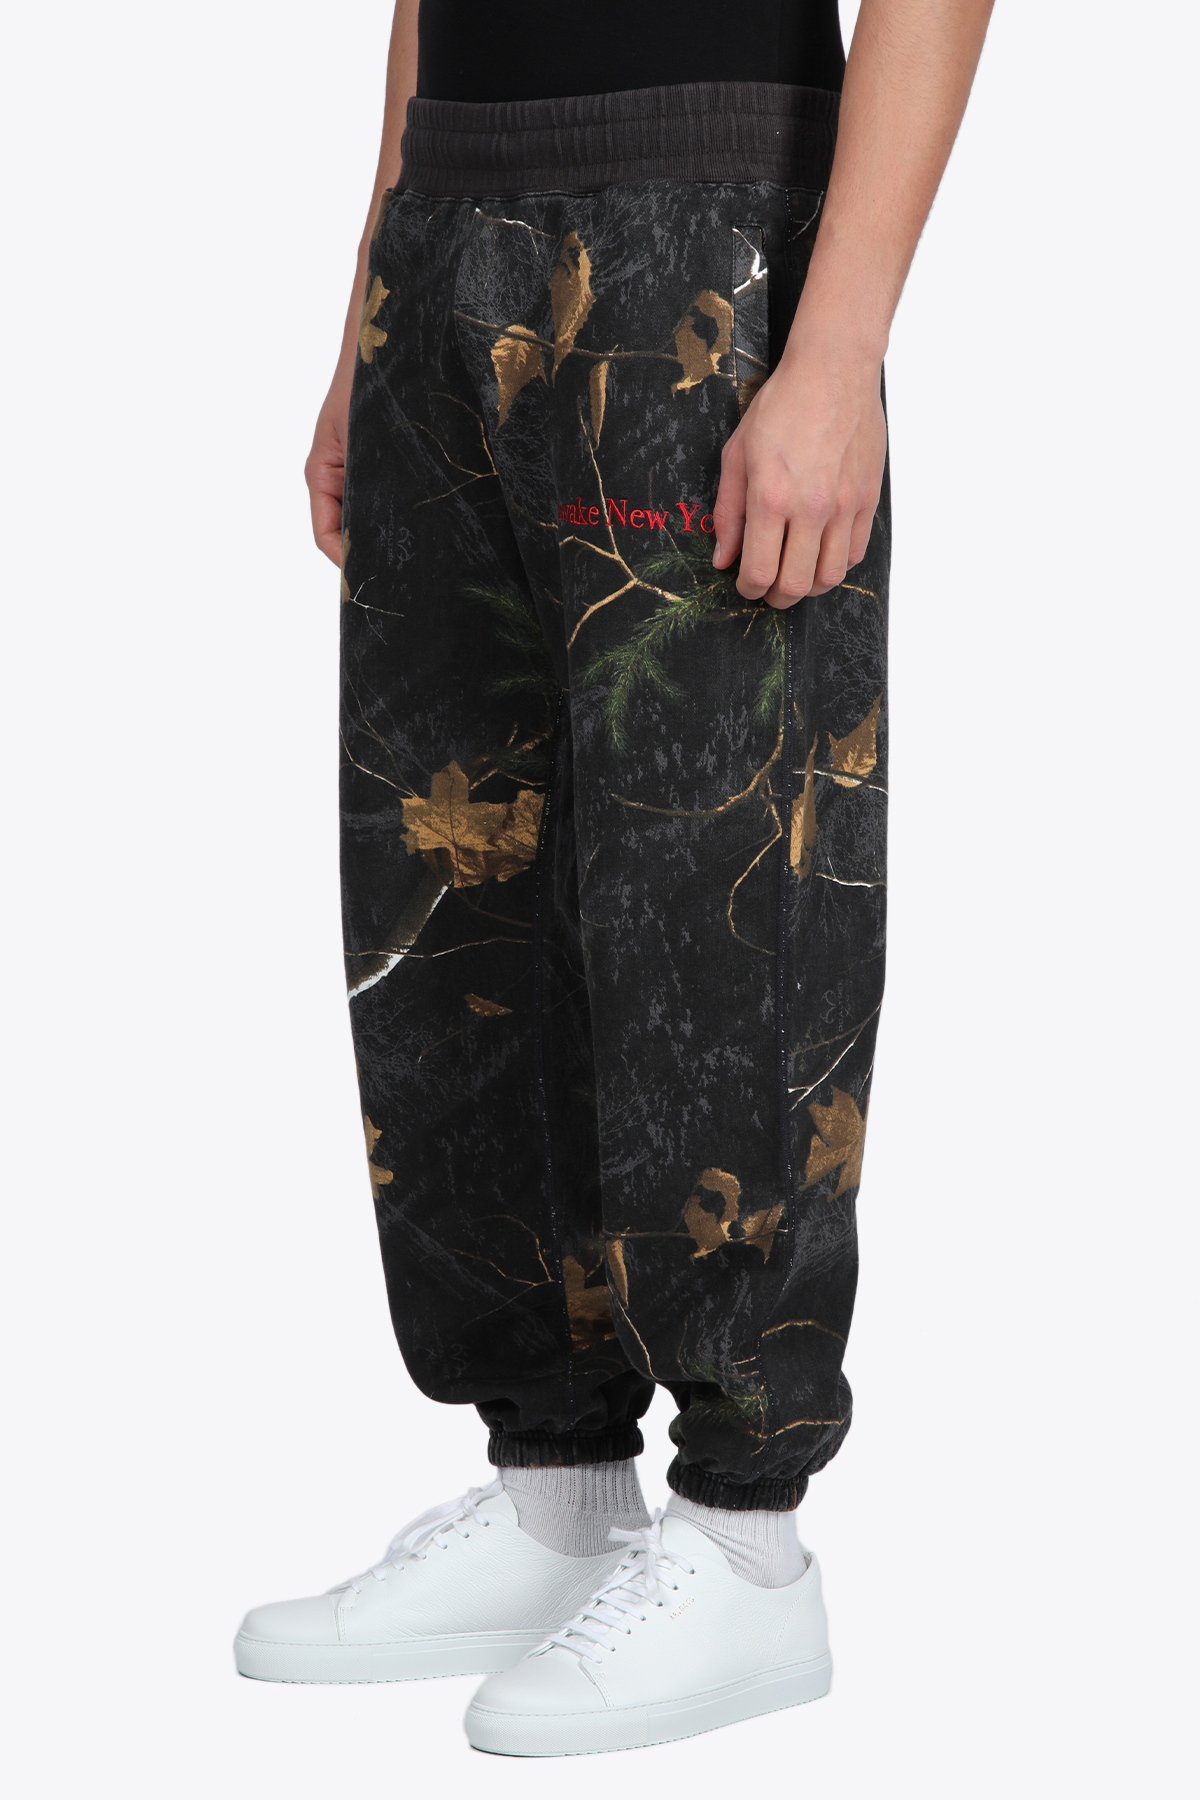 CLASSIC OUTLINE LOGO EMBROIDERED SWEATPANTS AWAKE NY   9   PT001 CLASSIC OUTLINE LOGO EMBROIDERED SREAL TREE